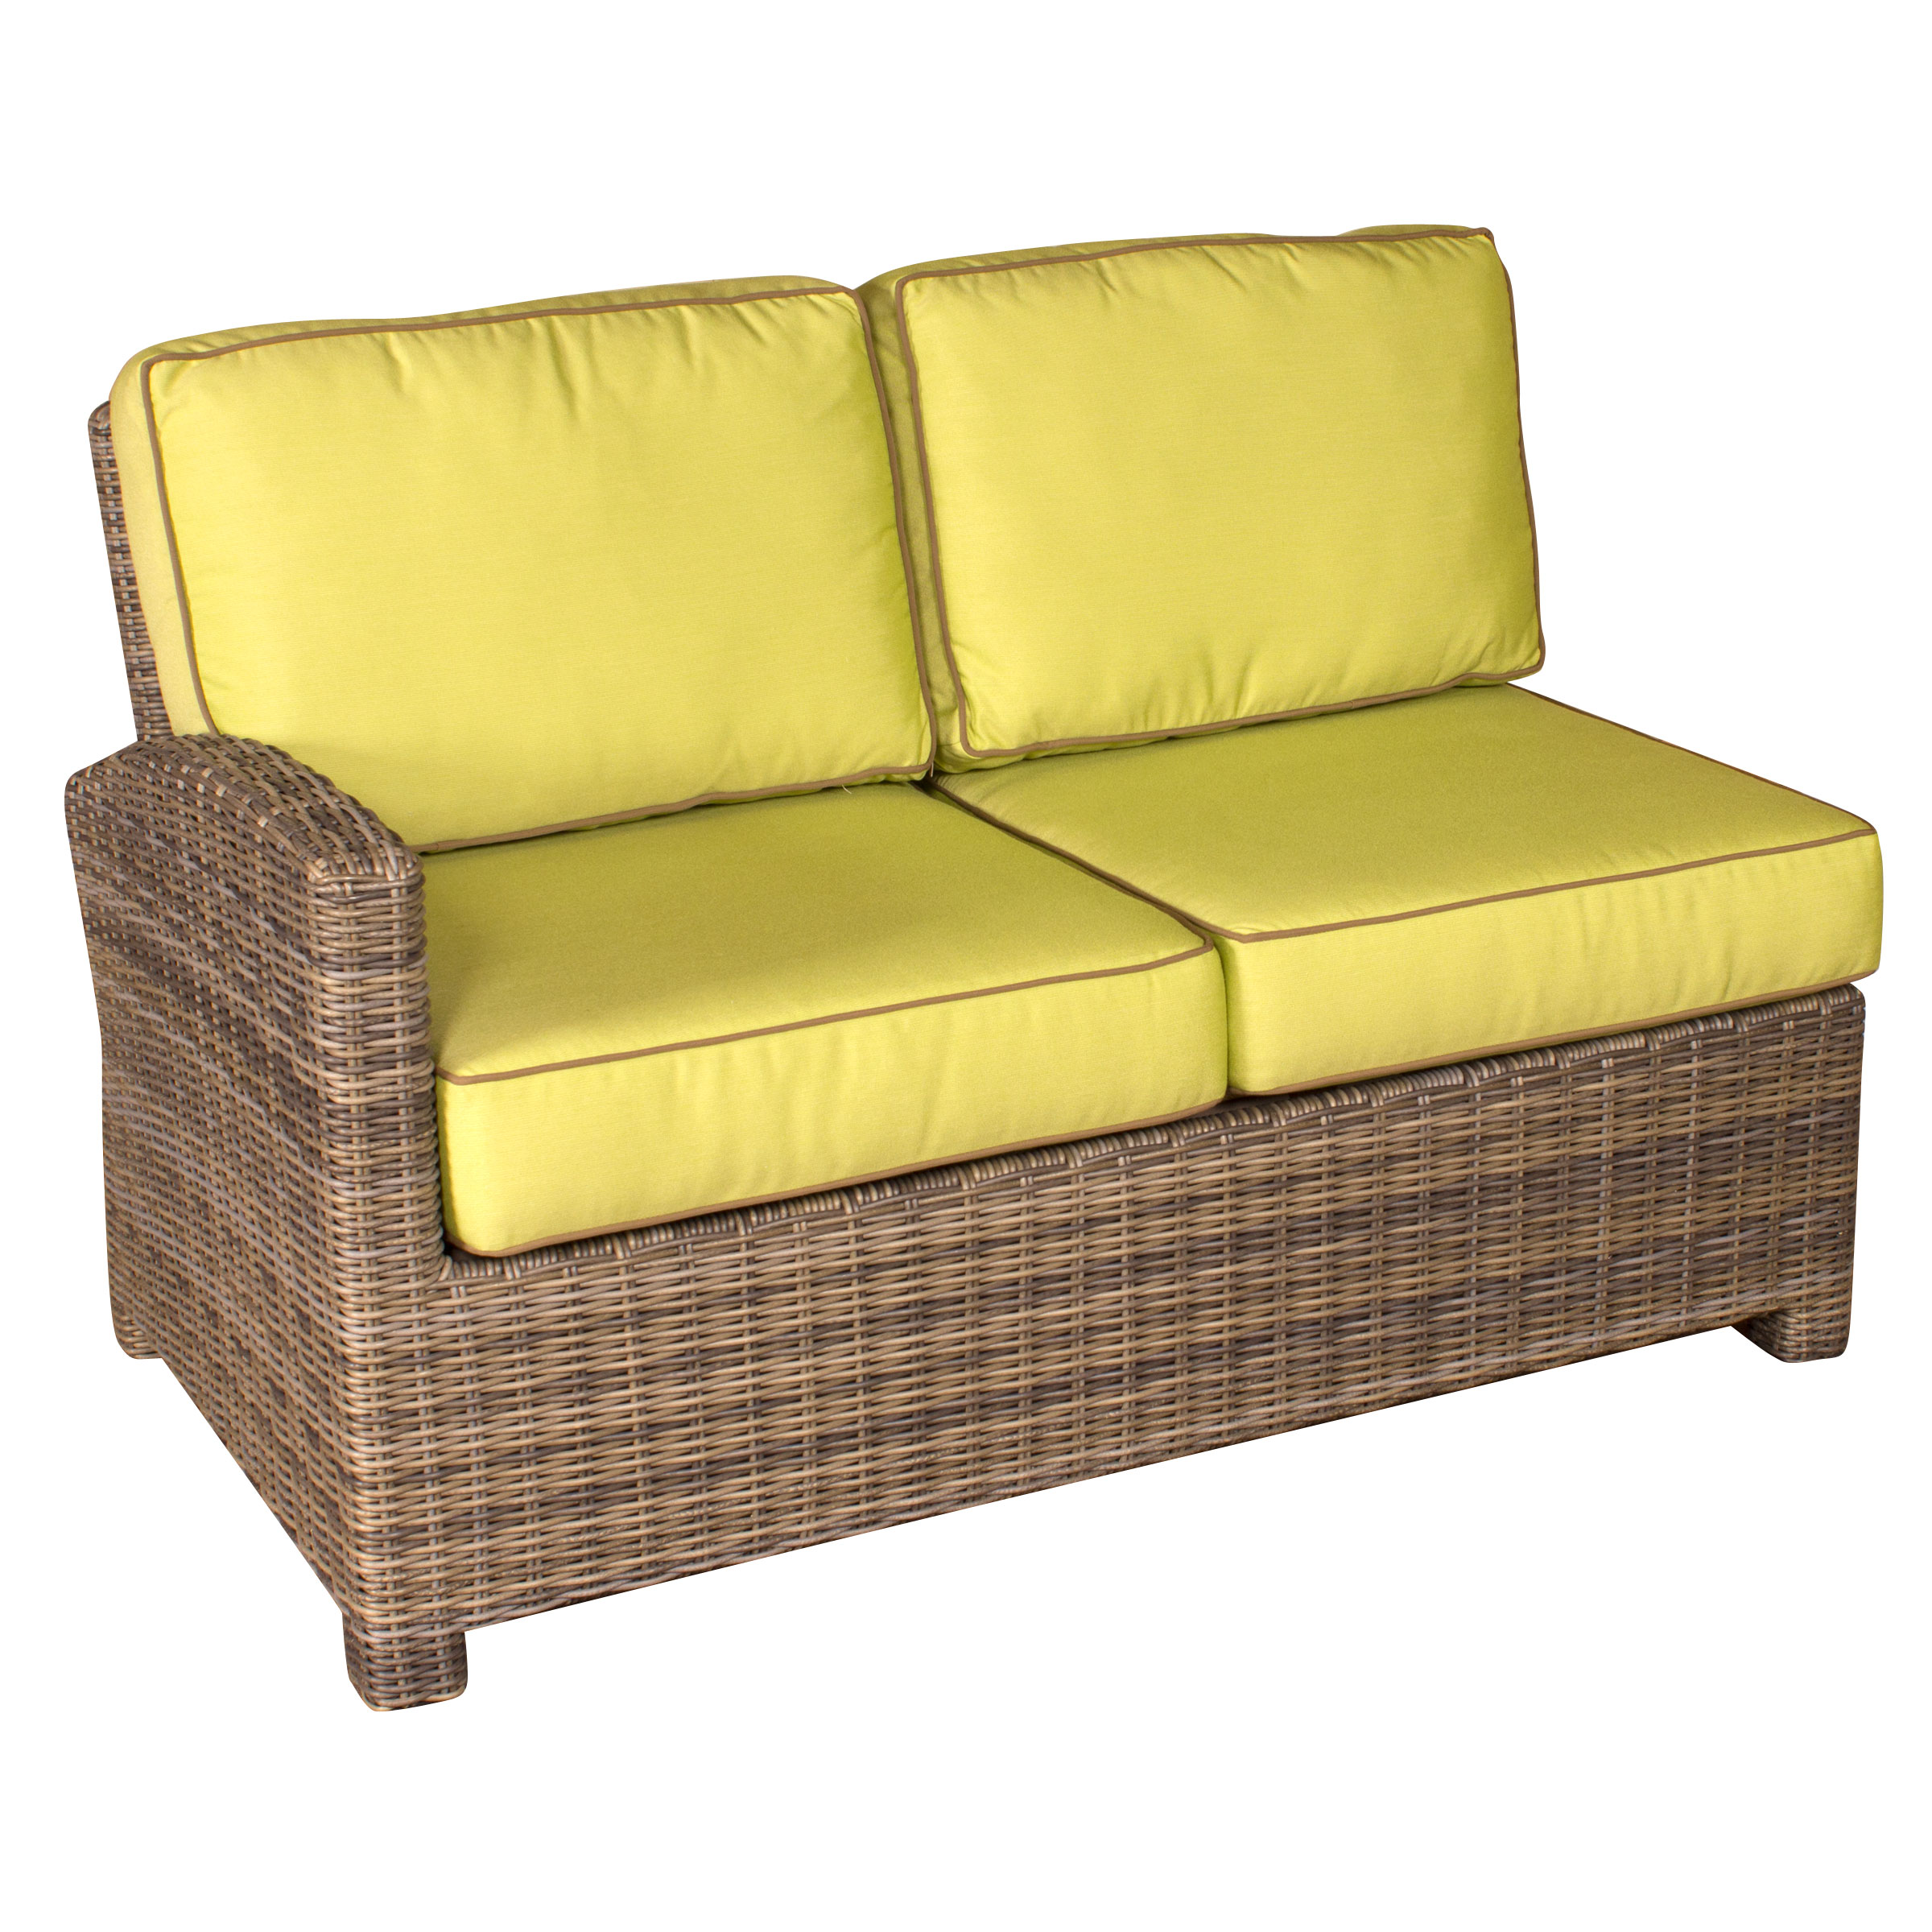 CATALINA LEFT ARM LOVE SEAT RC806 GRADE A $820.00 GRADE B $870.00 GRADE C $920.00